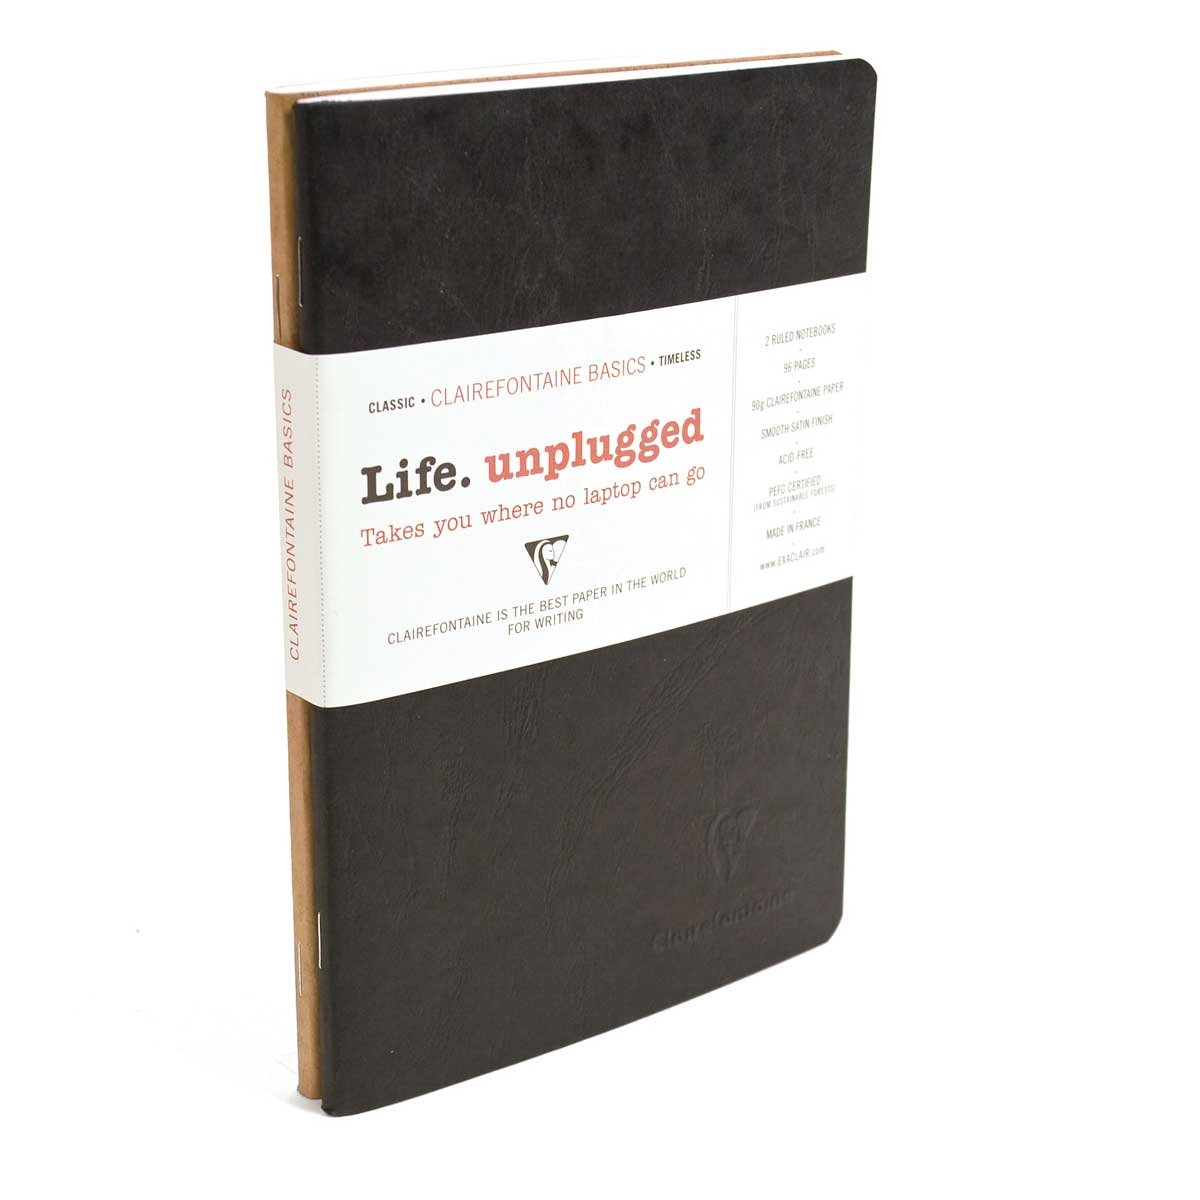 Clairefontaine Sb Duo Black/Tan 5.75X8.25